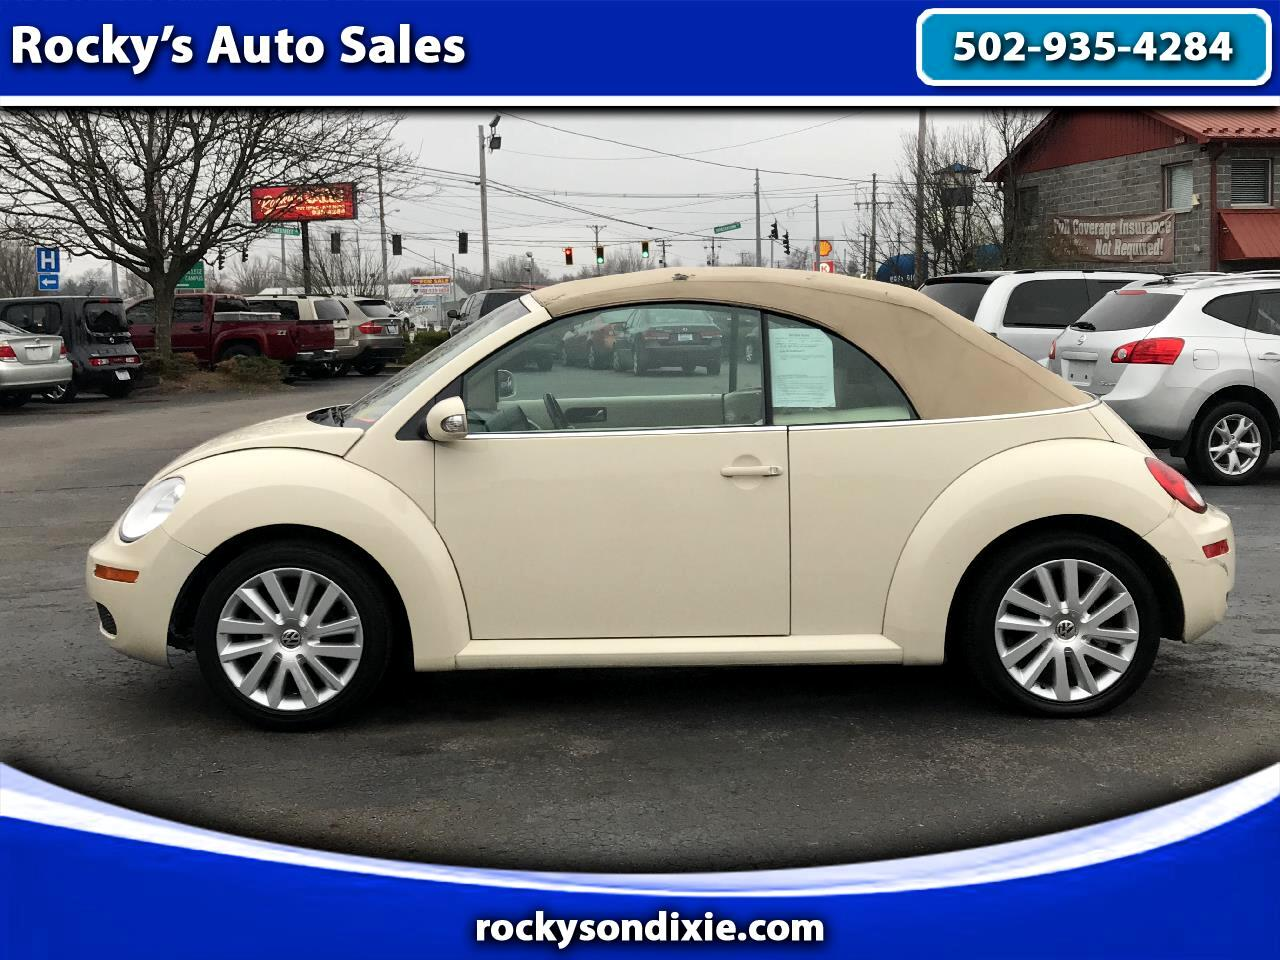 Volkswagen New Beetle Convertible 2dr Auto S PZEV 2009